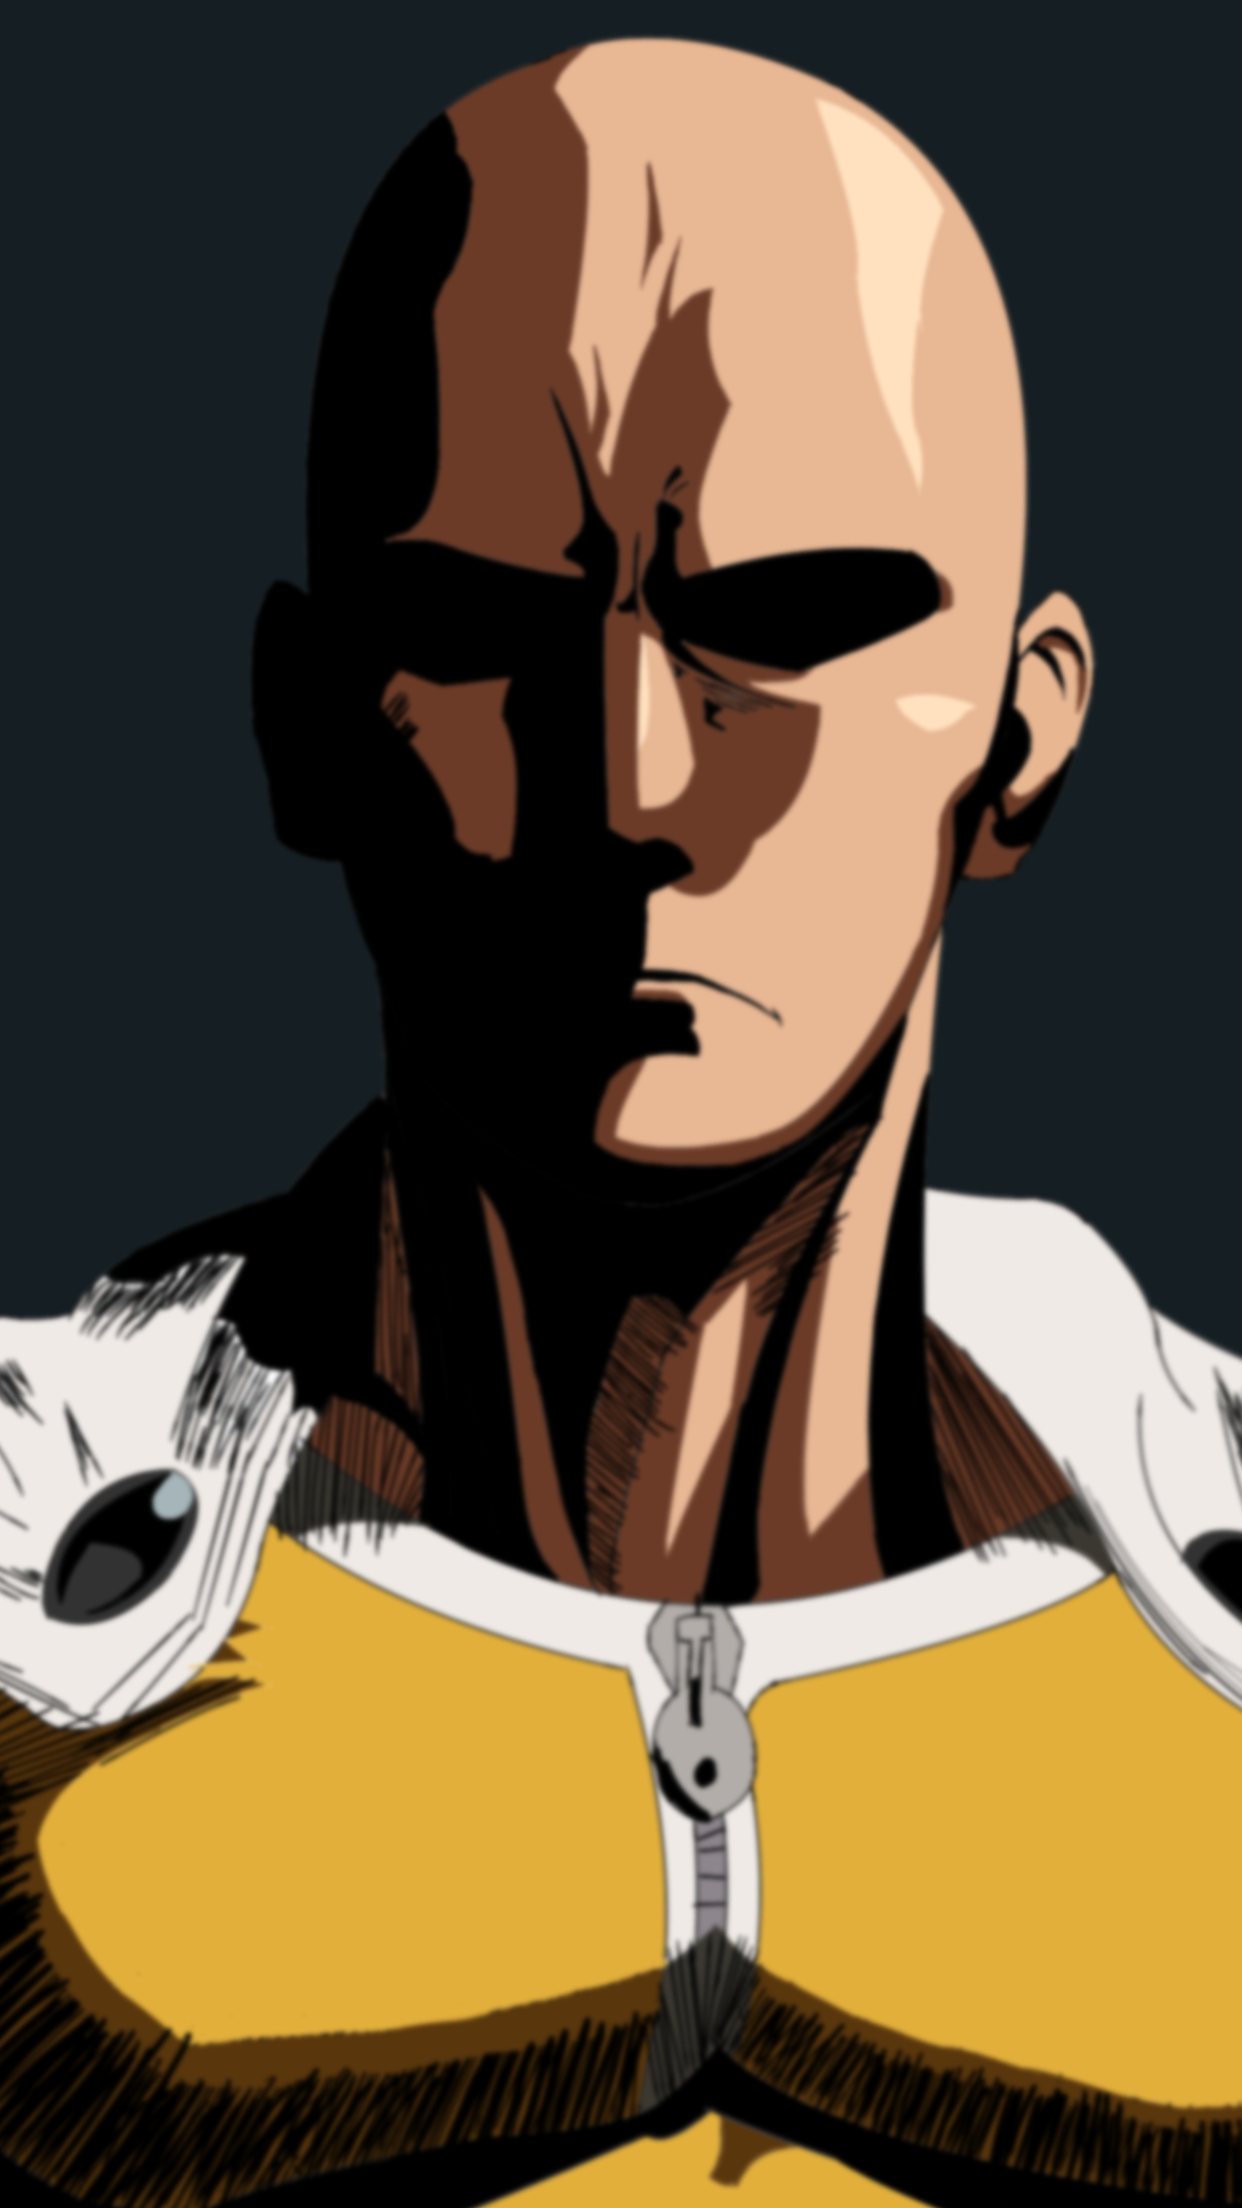 Abstract Girl Face Wallpaper One Punch Man Saitama 2 Wallpaper For Iphone X 8 7 6